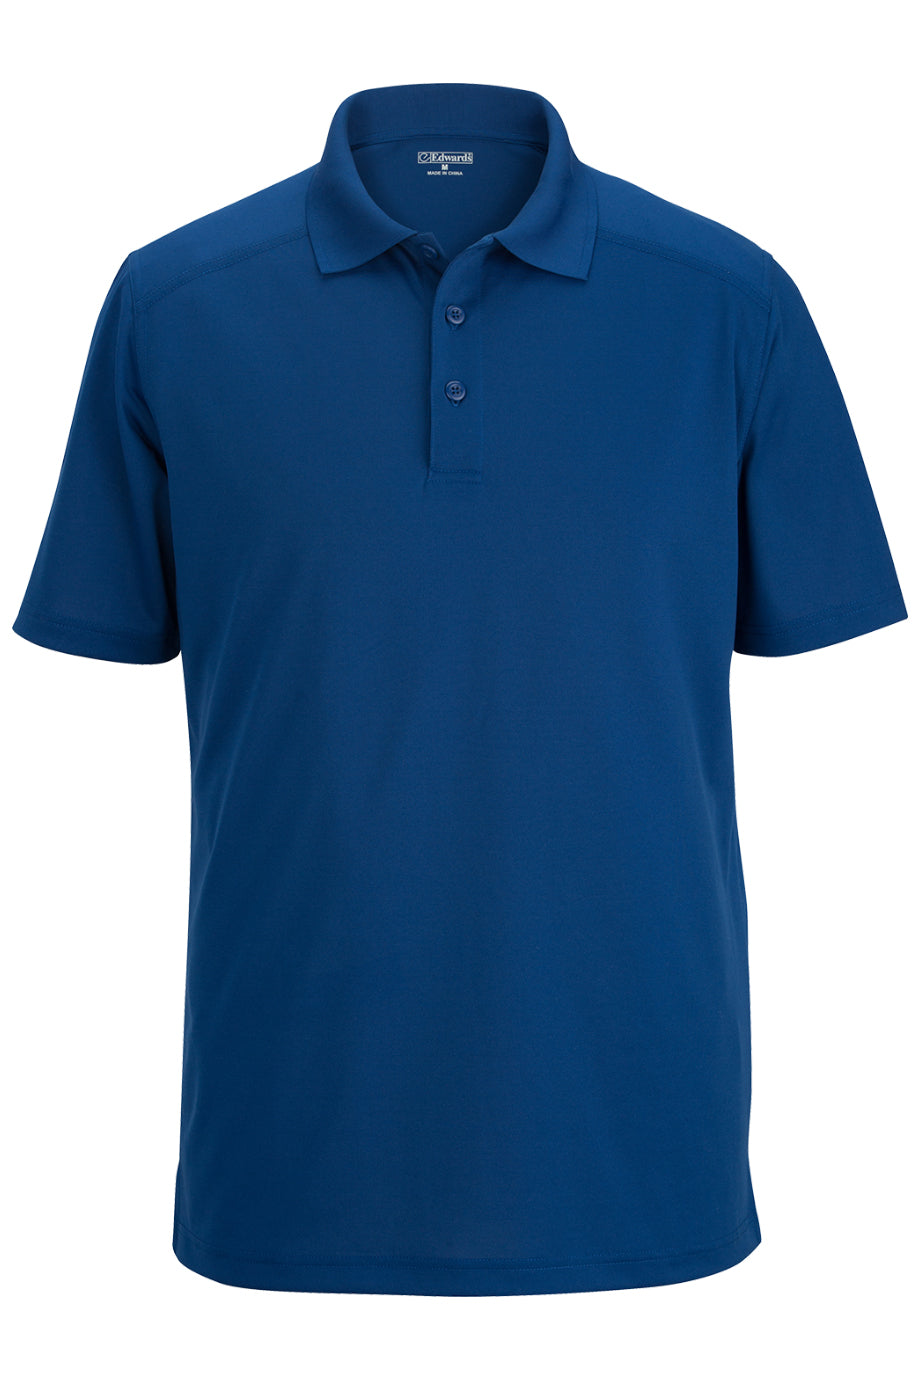 Royal Edwards Mens Durable Performance Polo